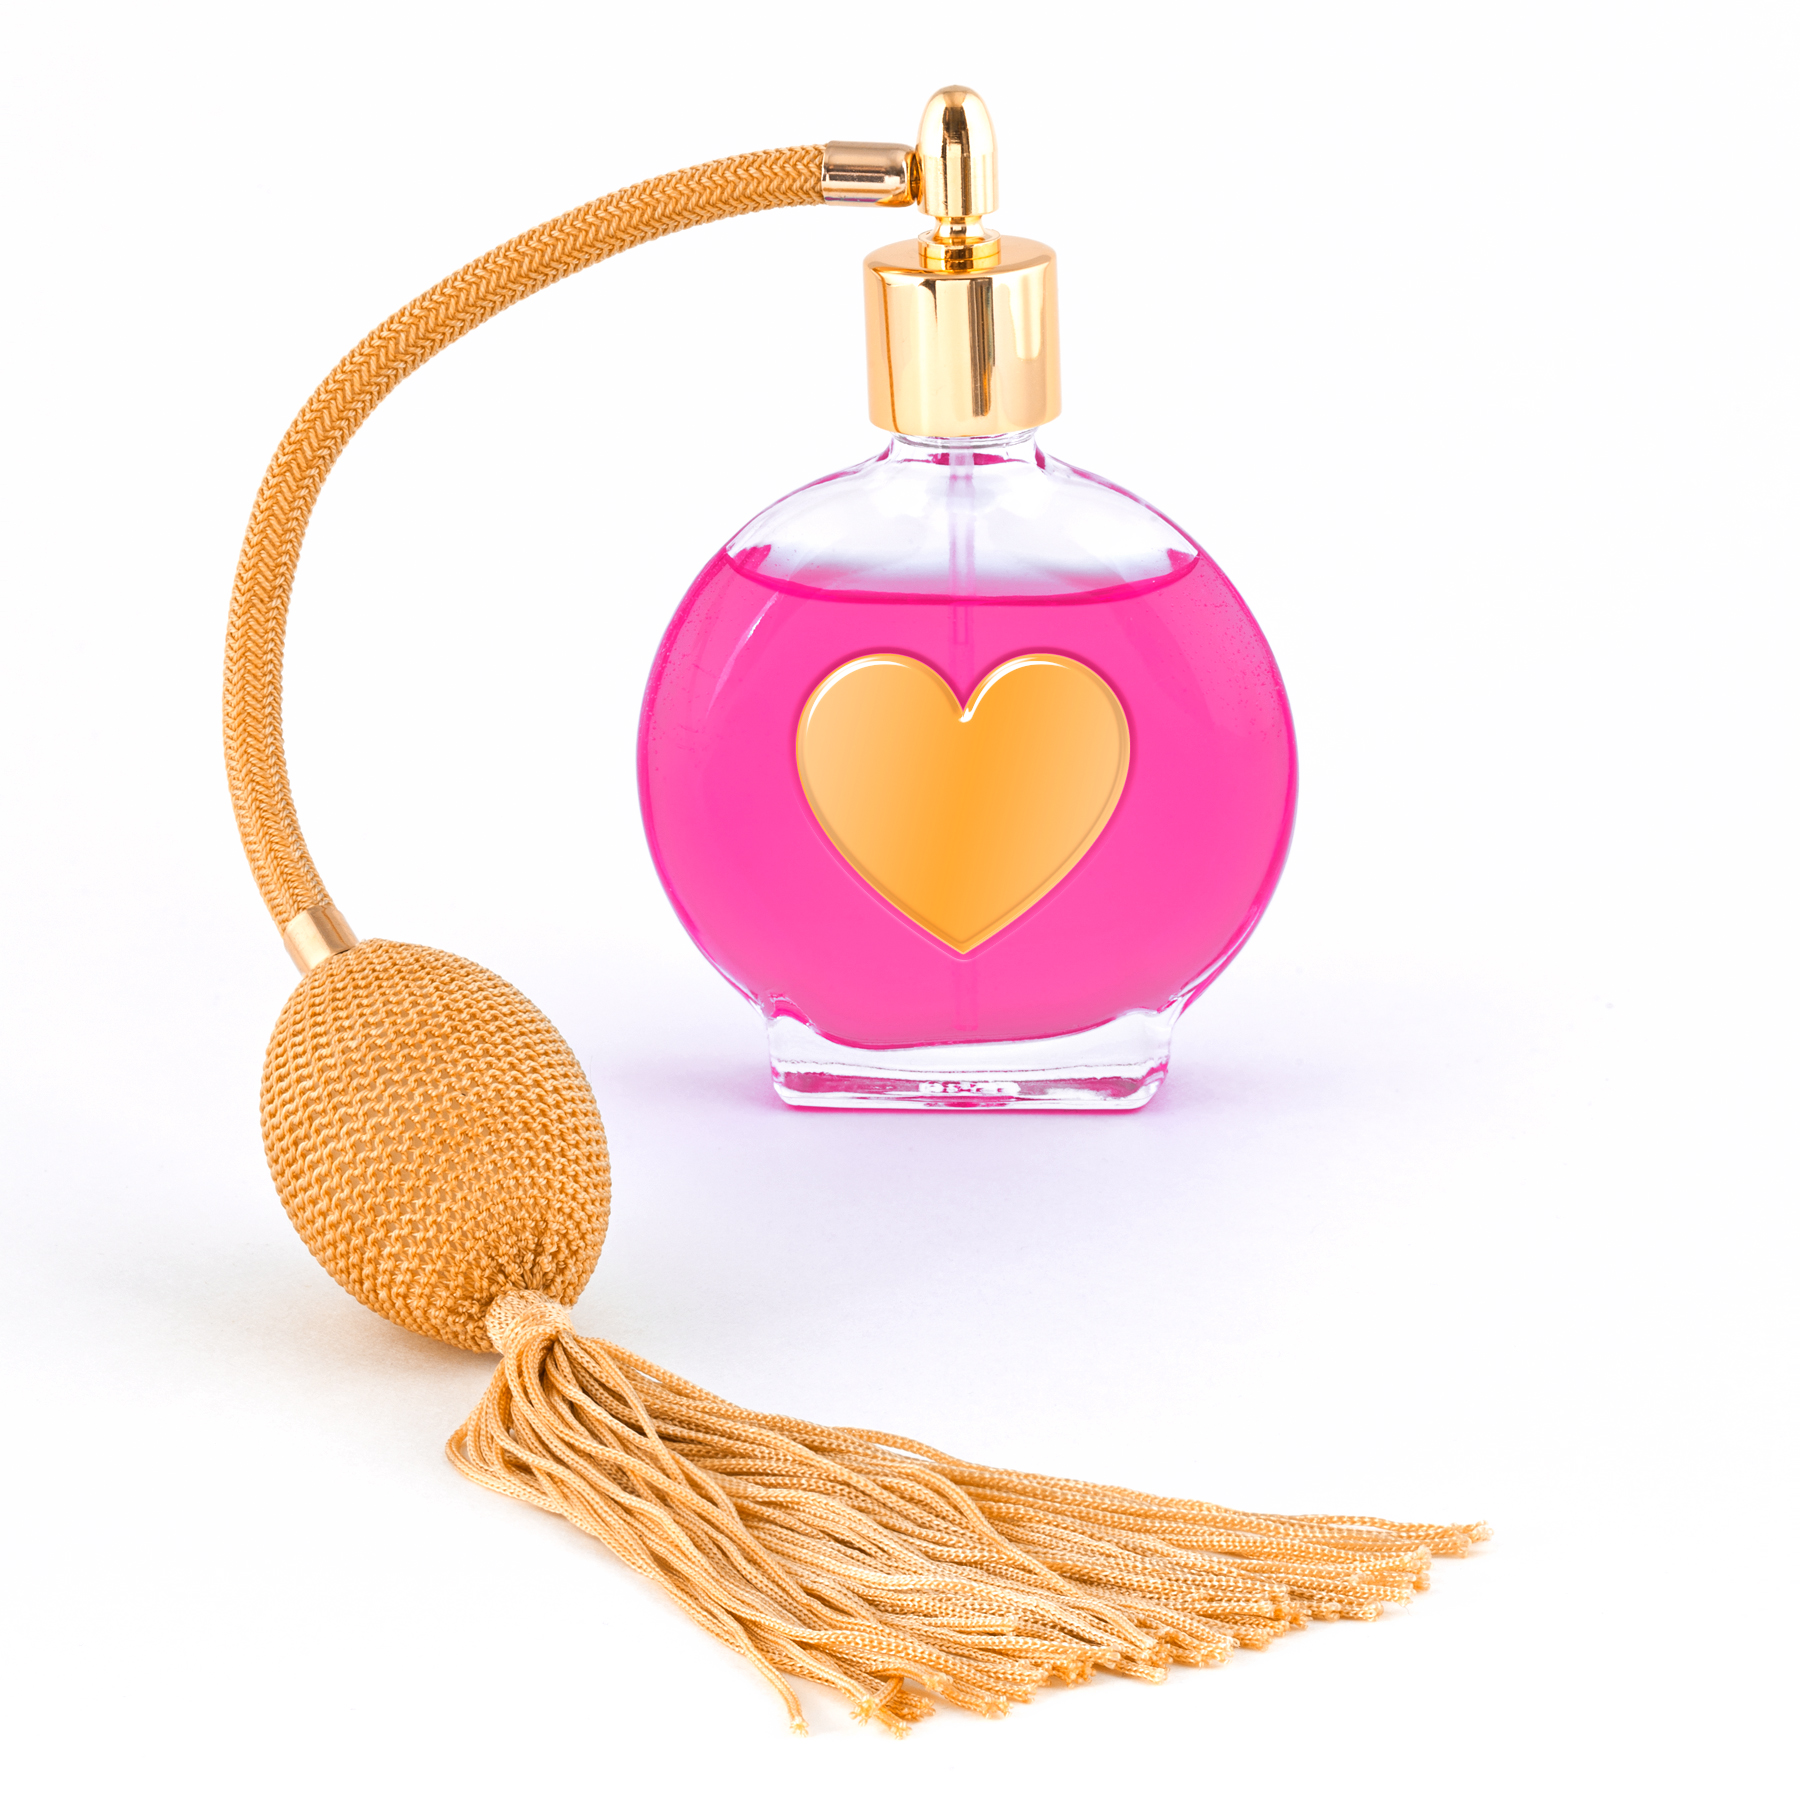 Love Potion, Antique, Romance, Object, Parfum, HQ Photo